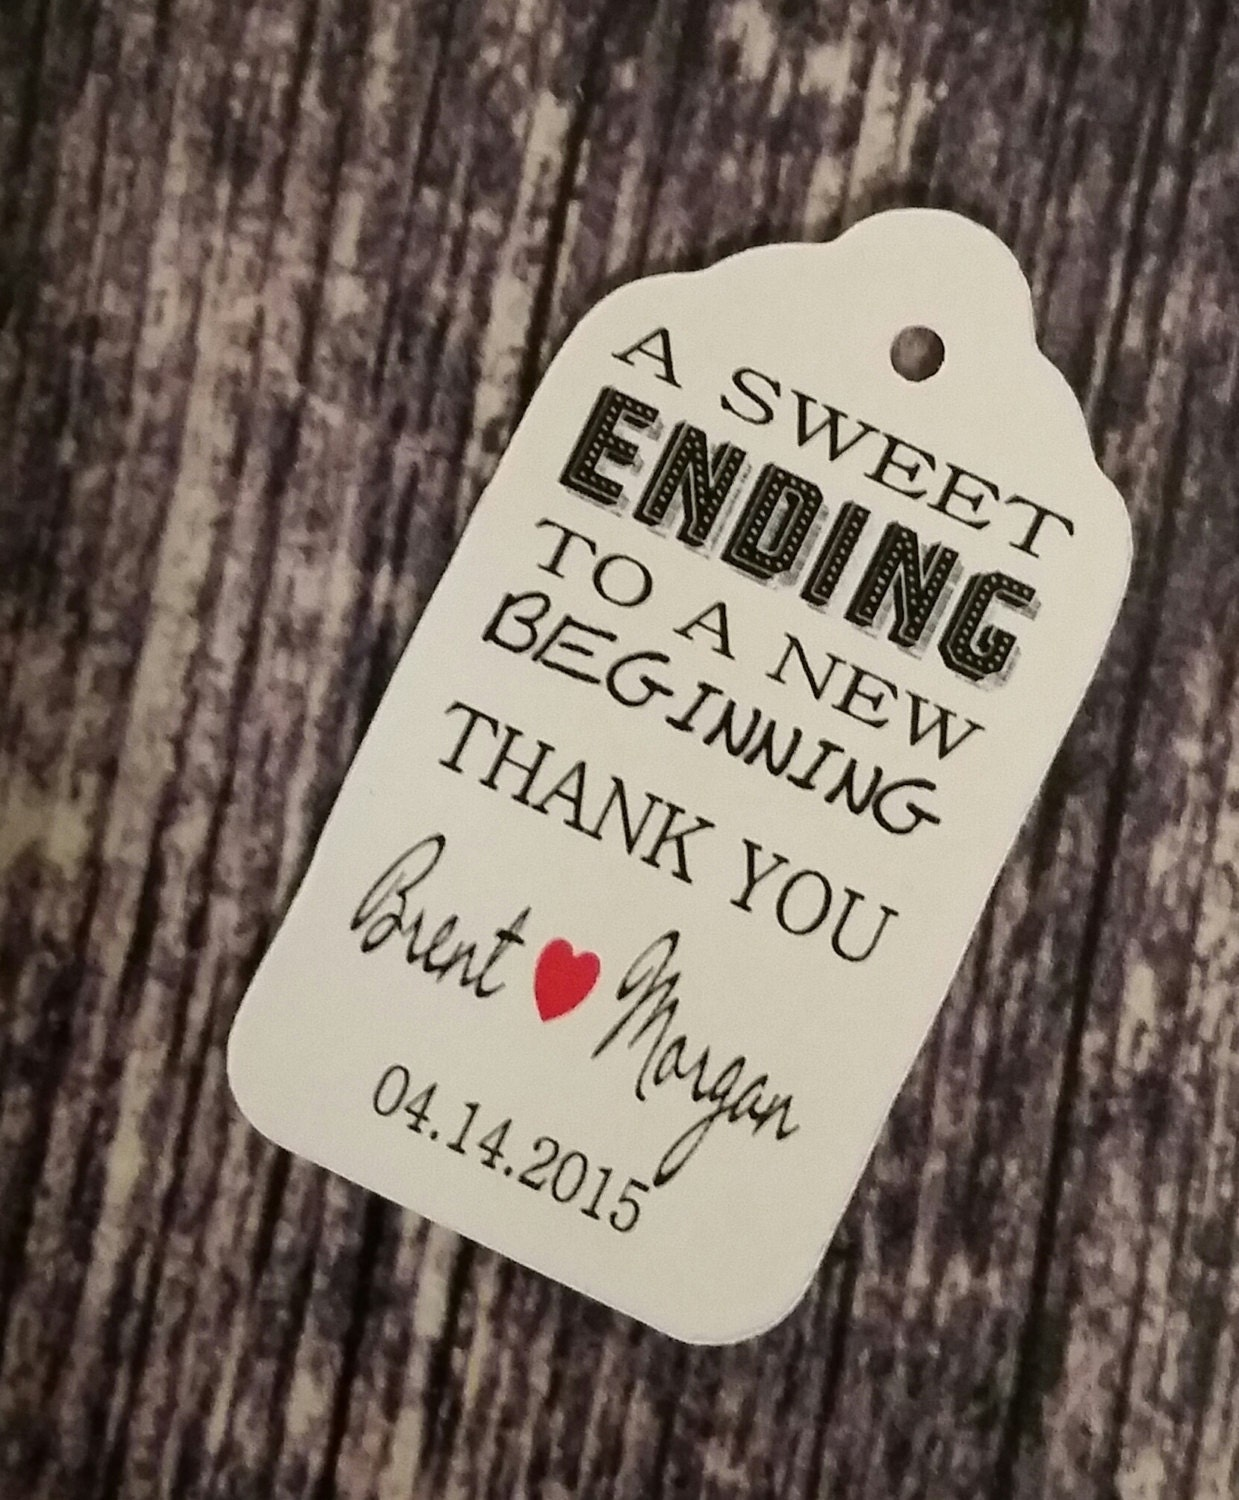 Wedding Favor Tags With Photo : Sweet Ending to a new Beginning Thank You favor tag MEDIUM